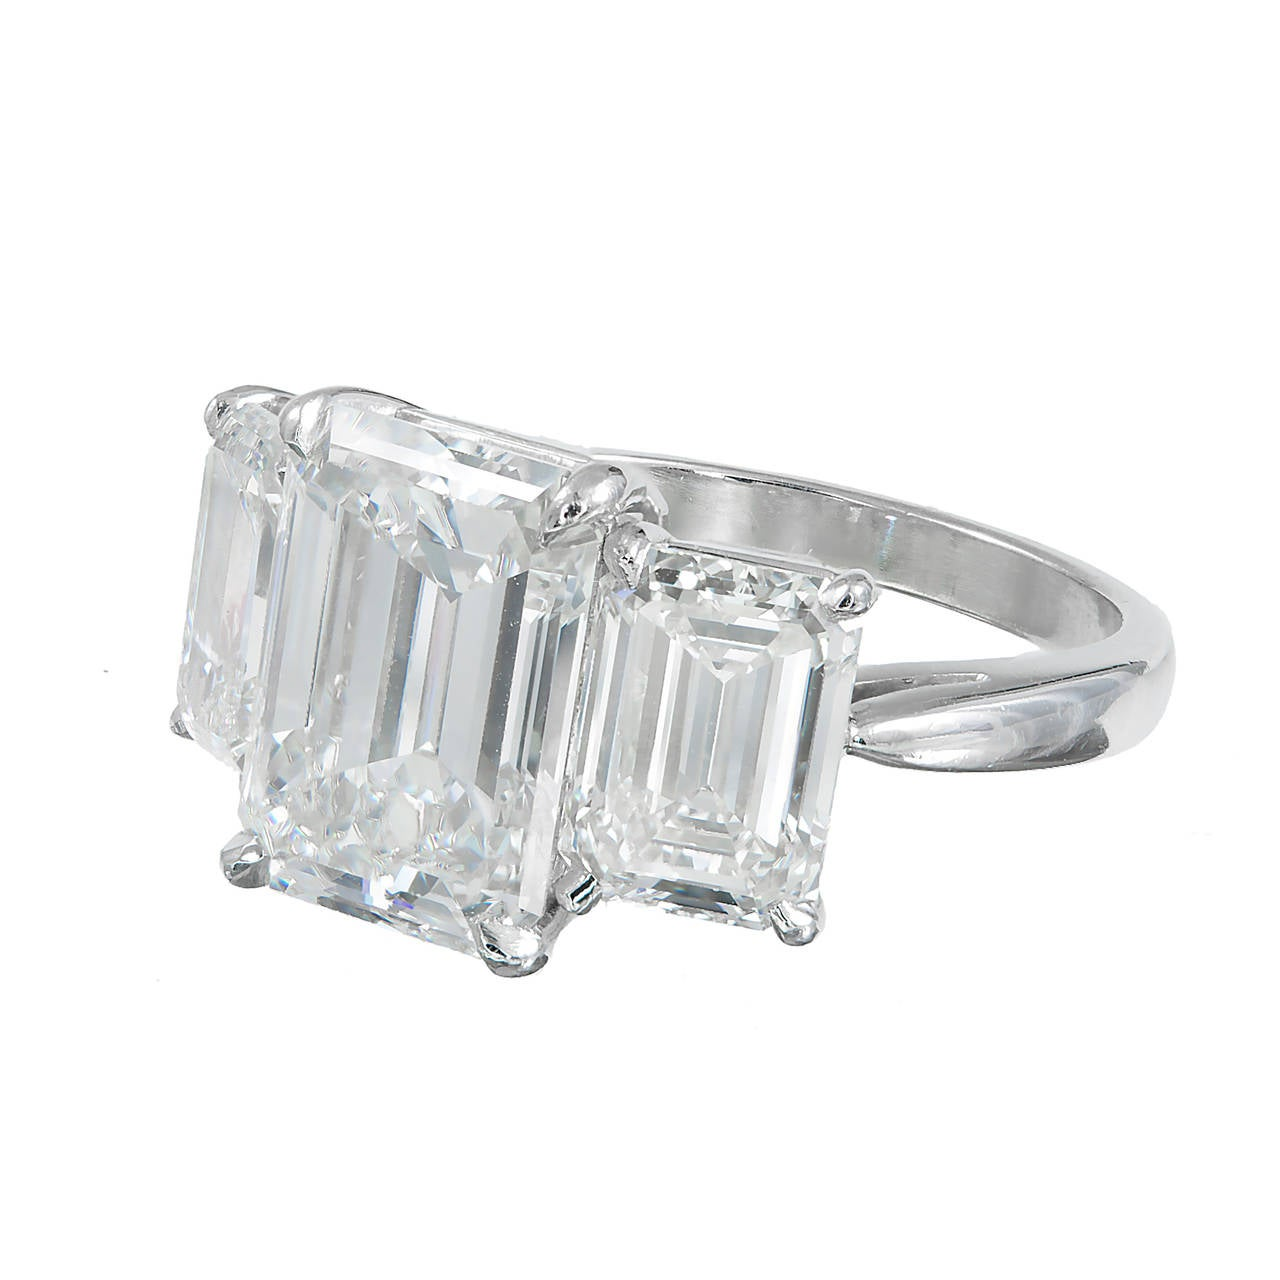 5 02 Carats Three Stone Emerald Cut Diamond Platinum Ring GIA Certified at 1